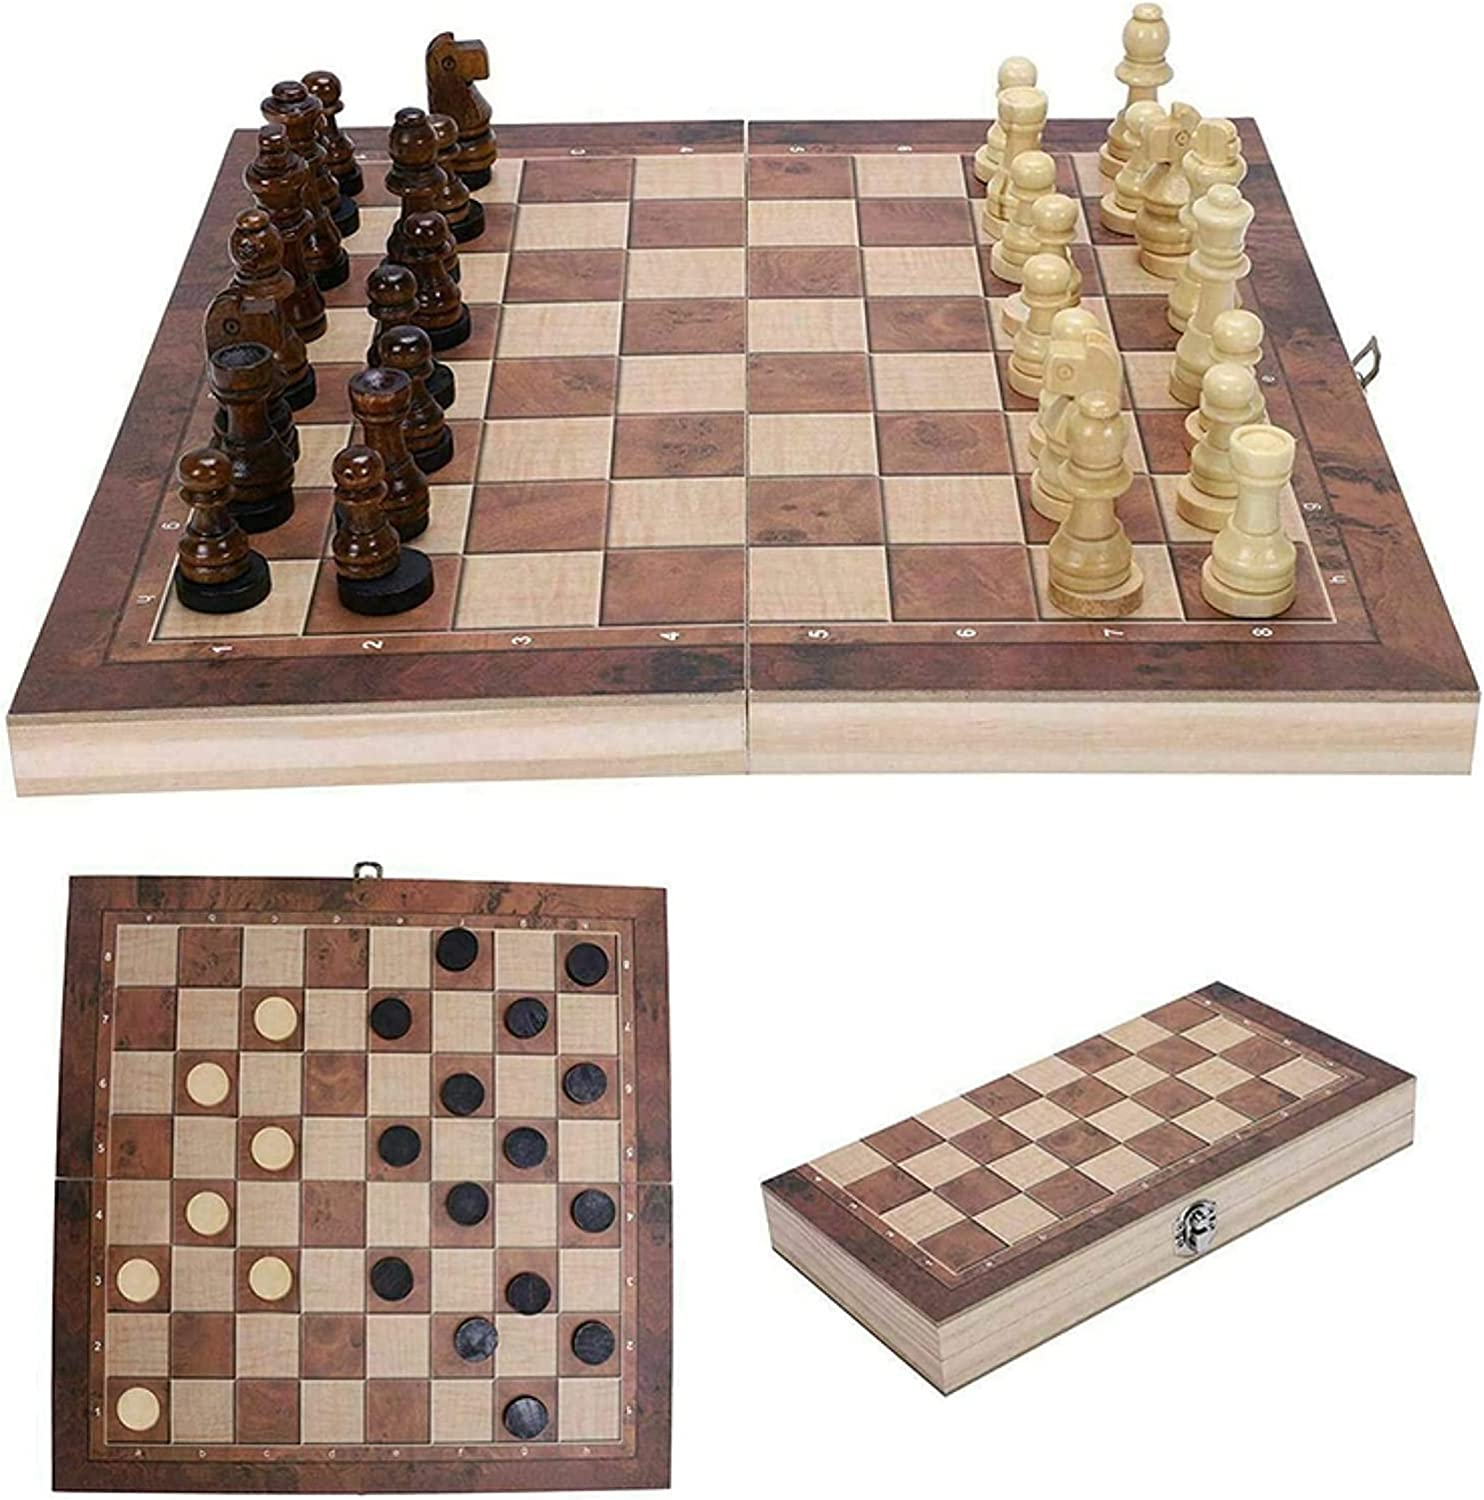 MTCWD Wooden Save money Chess Set Magnetic Foldable Travel Magn Board Popularity